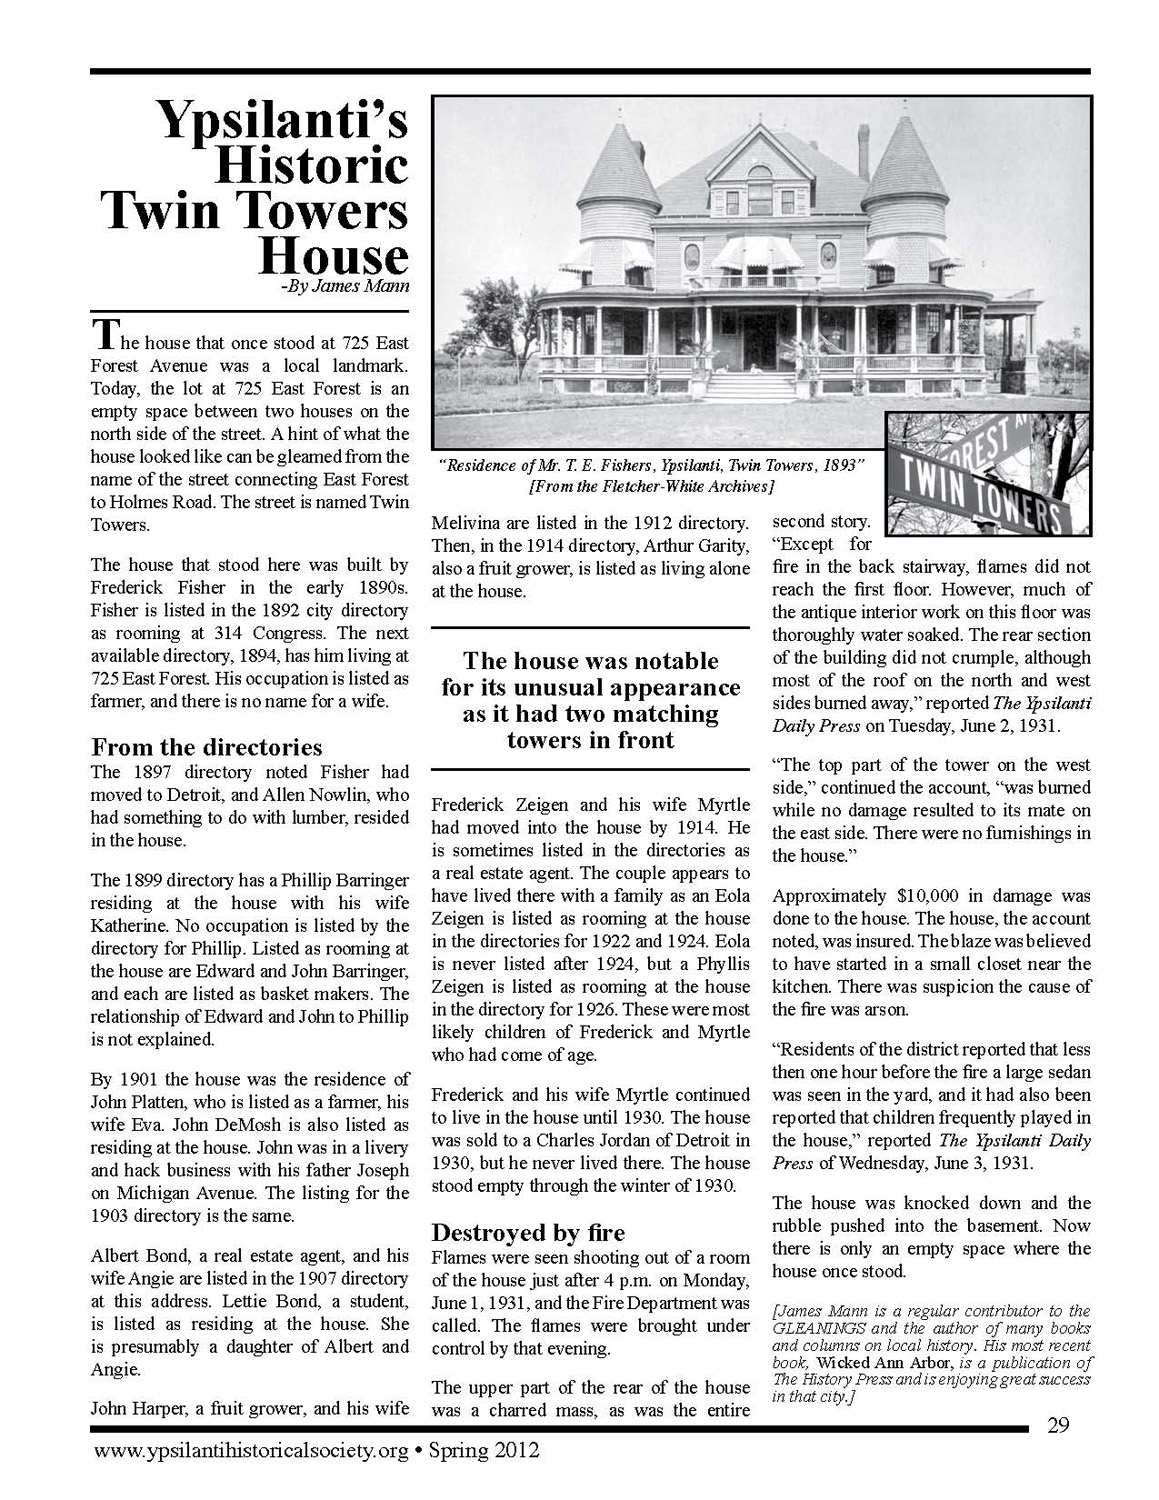 The Twin Towers House image